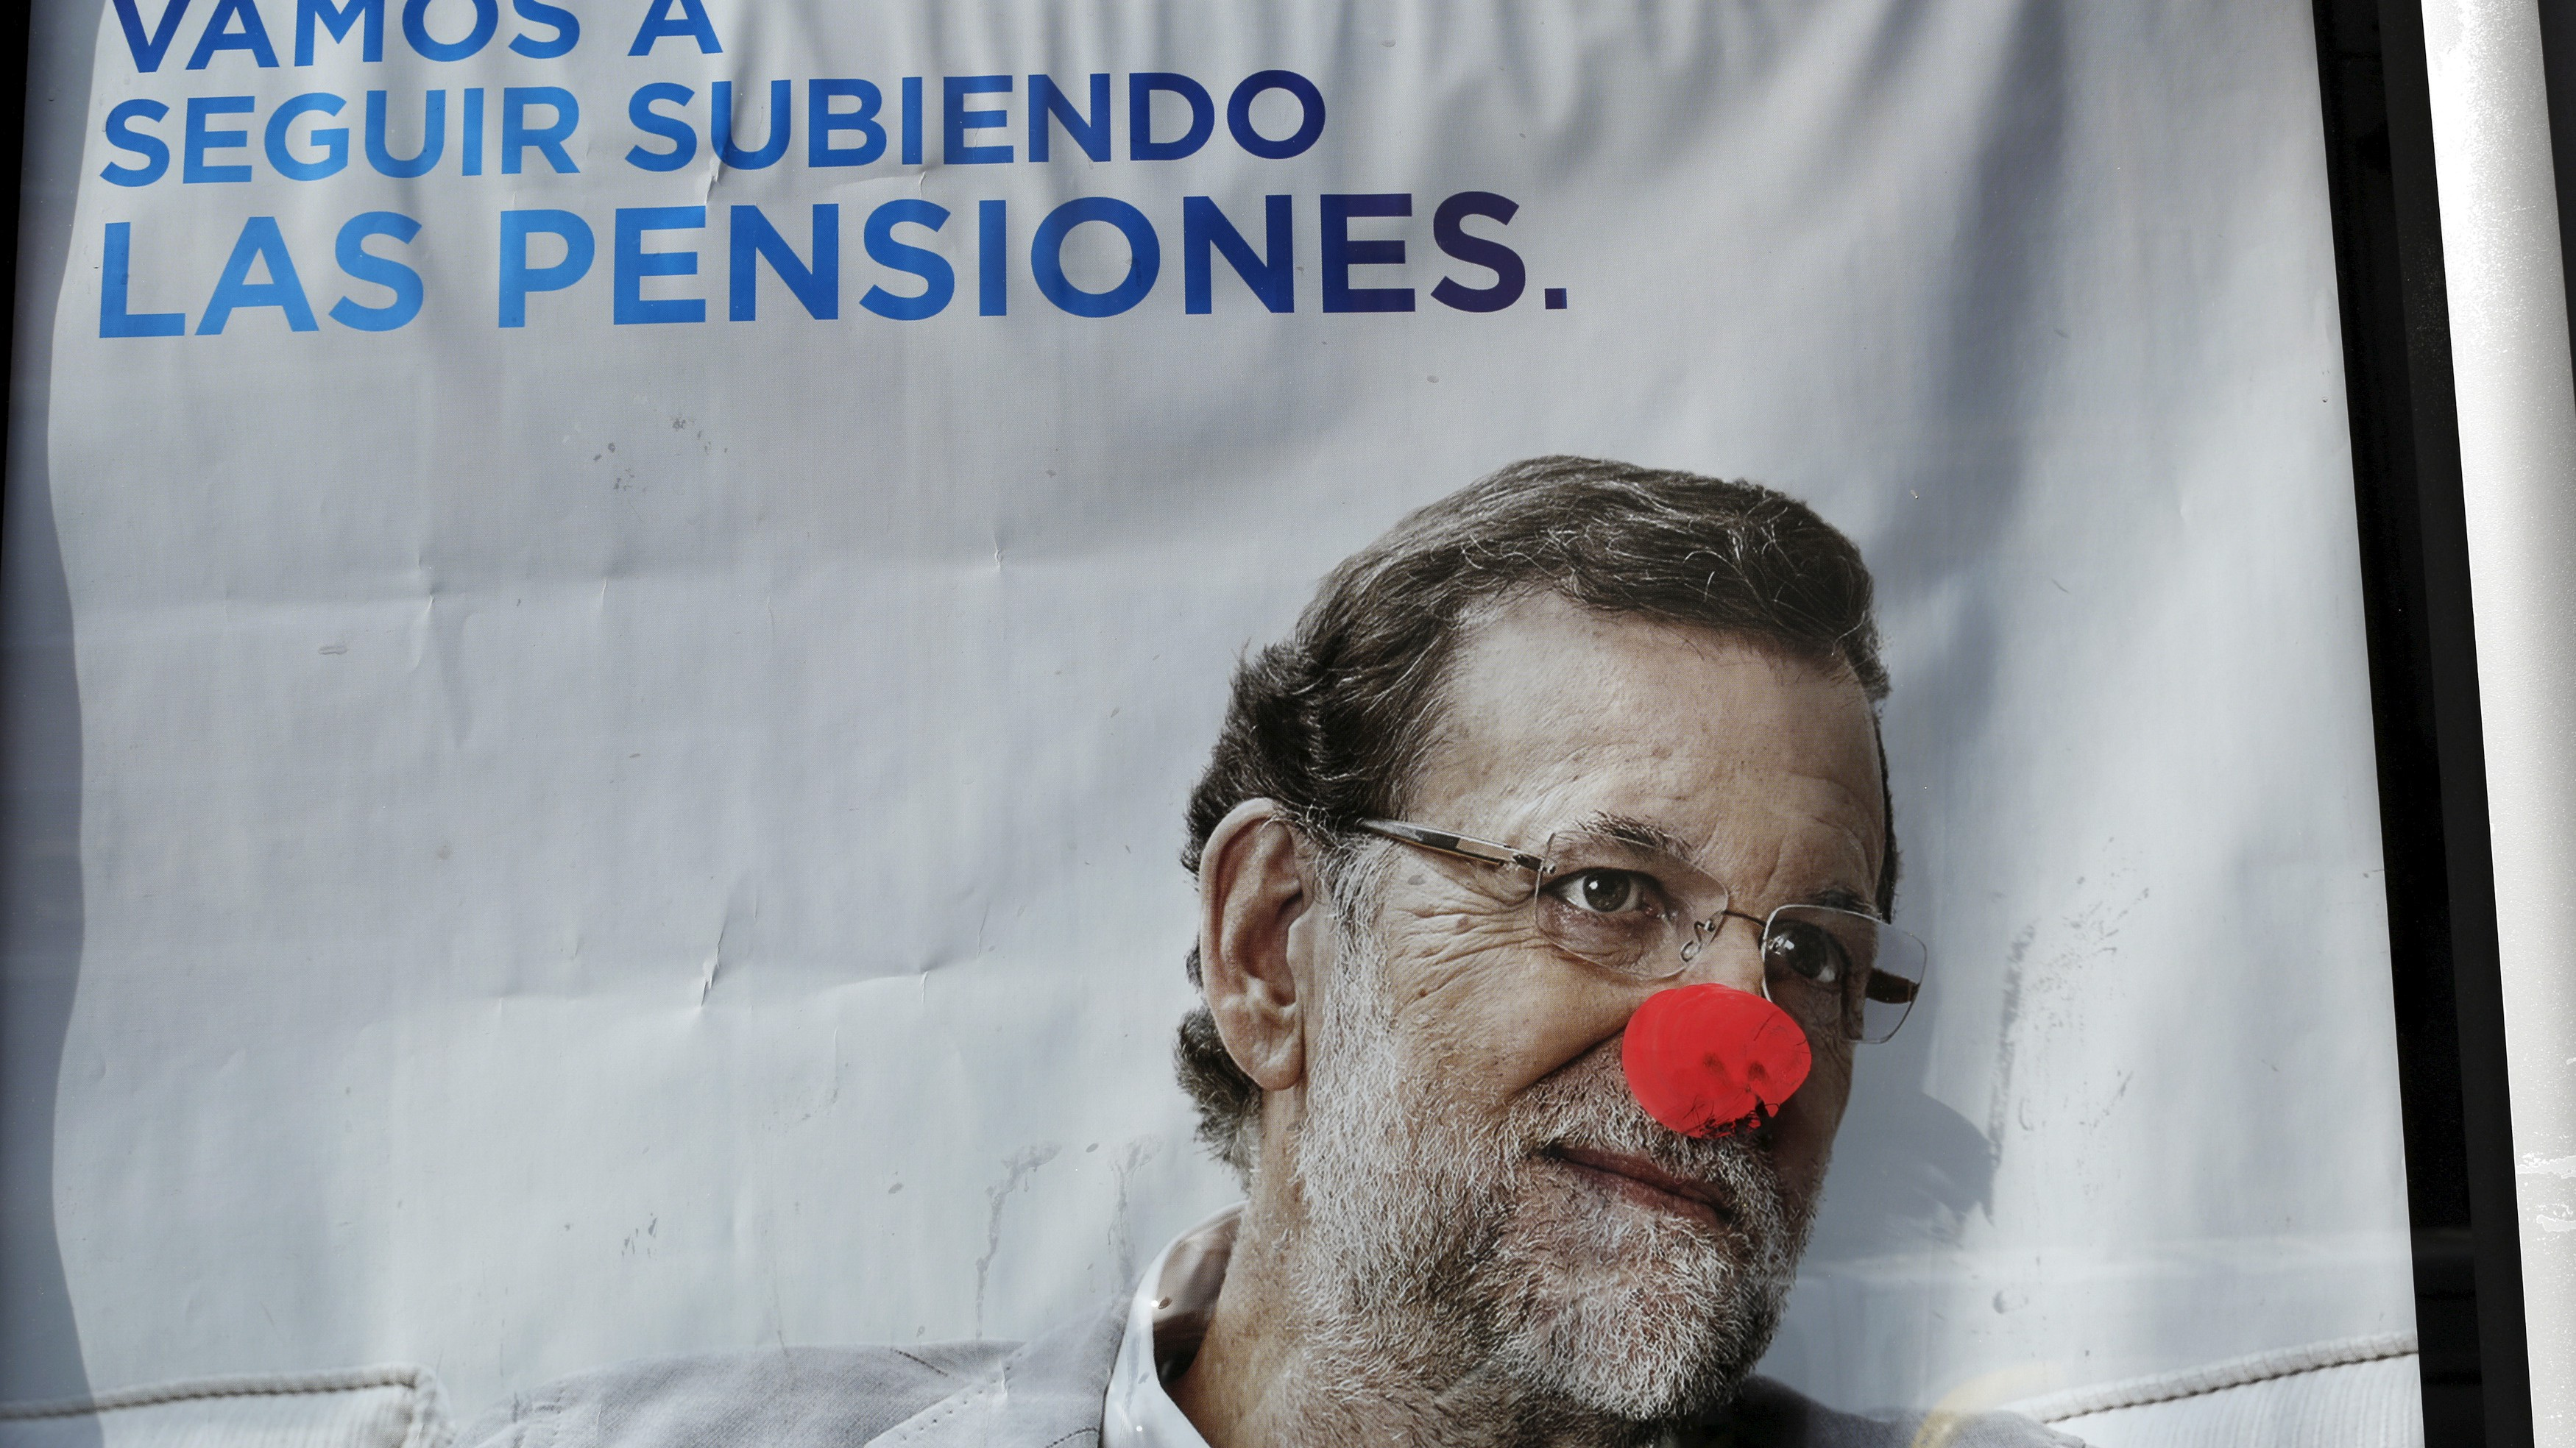 A defaced campaign poster of Spanish Prime Minister and ruling People's Party (PP) leader Mariano Rajoy, one of the four leading candidates for Spain's general election, is pictured in Seville, southern Spain December 16, 2015.